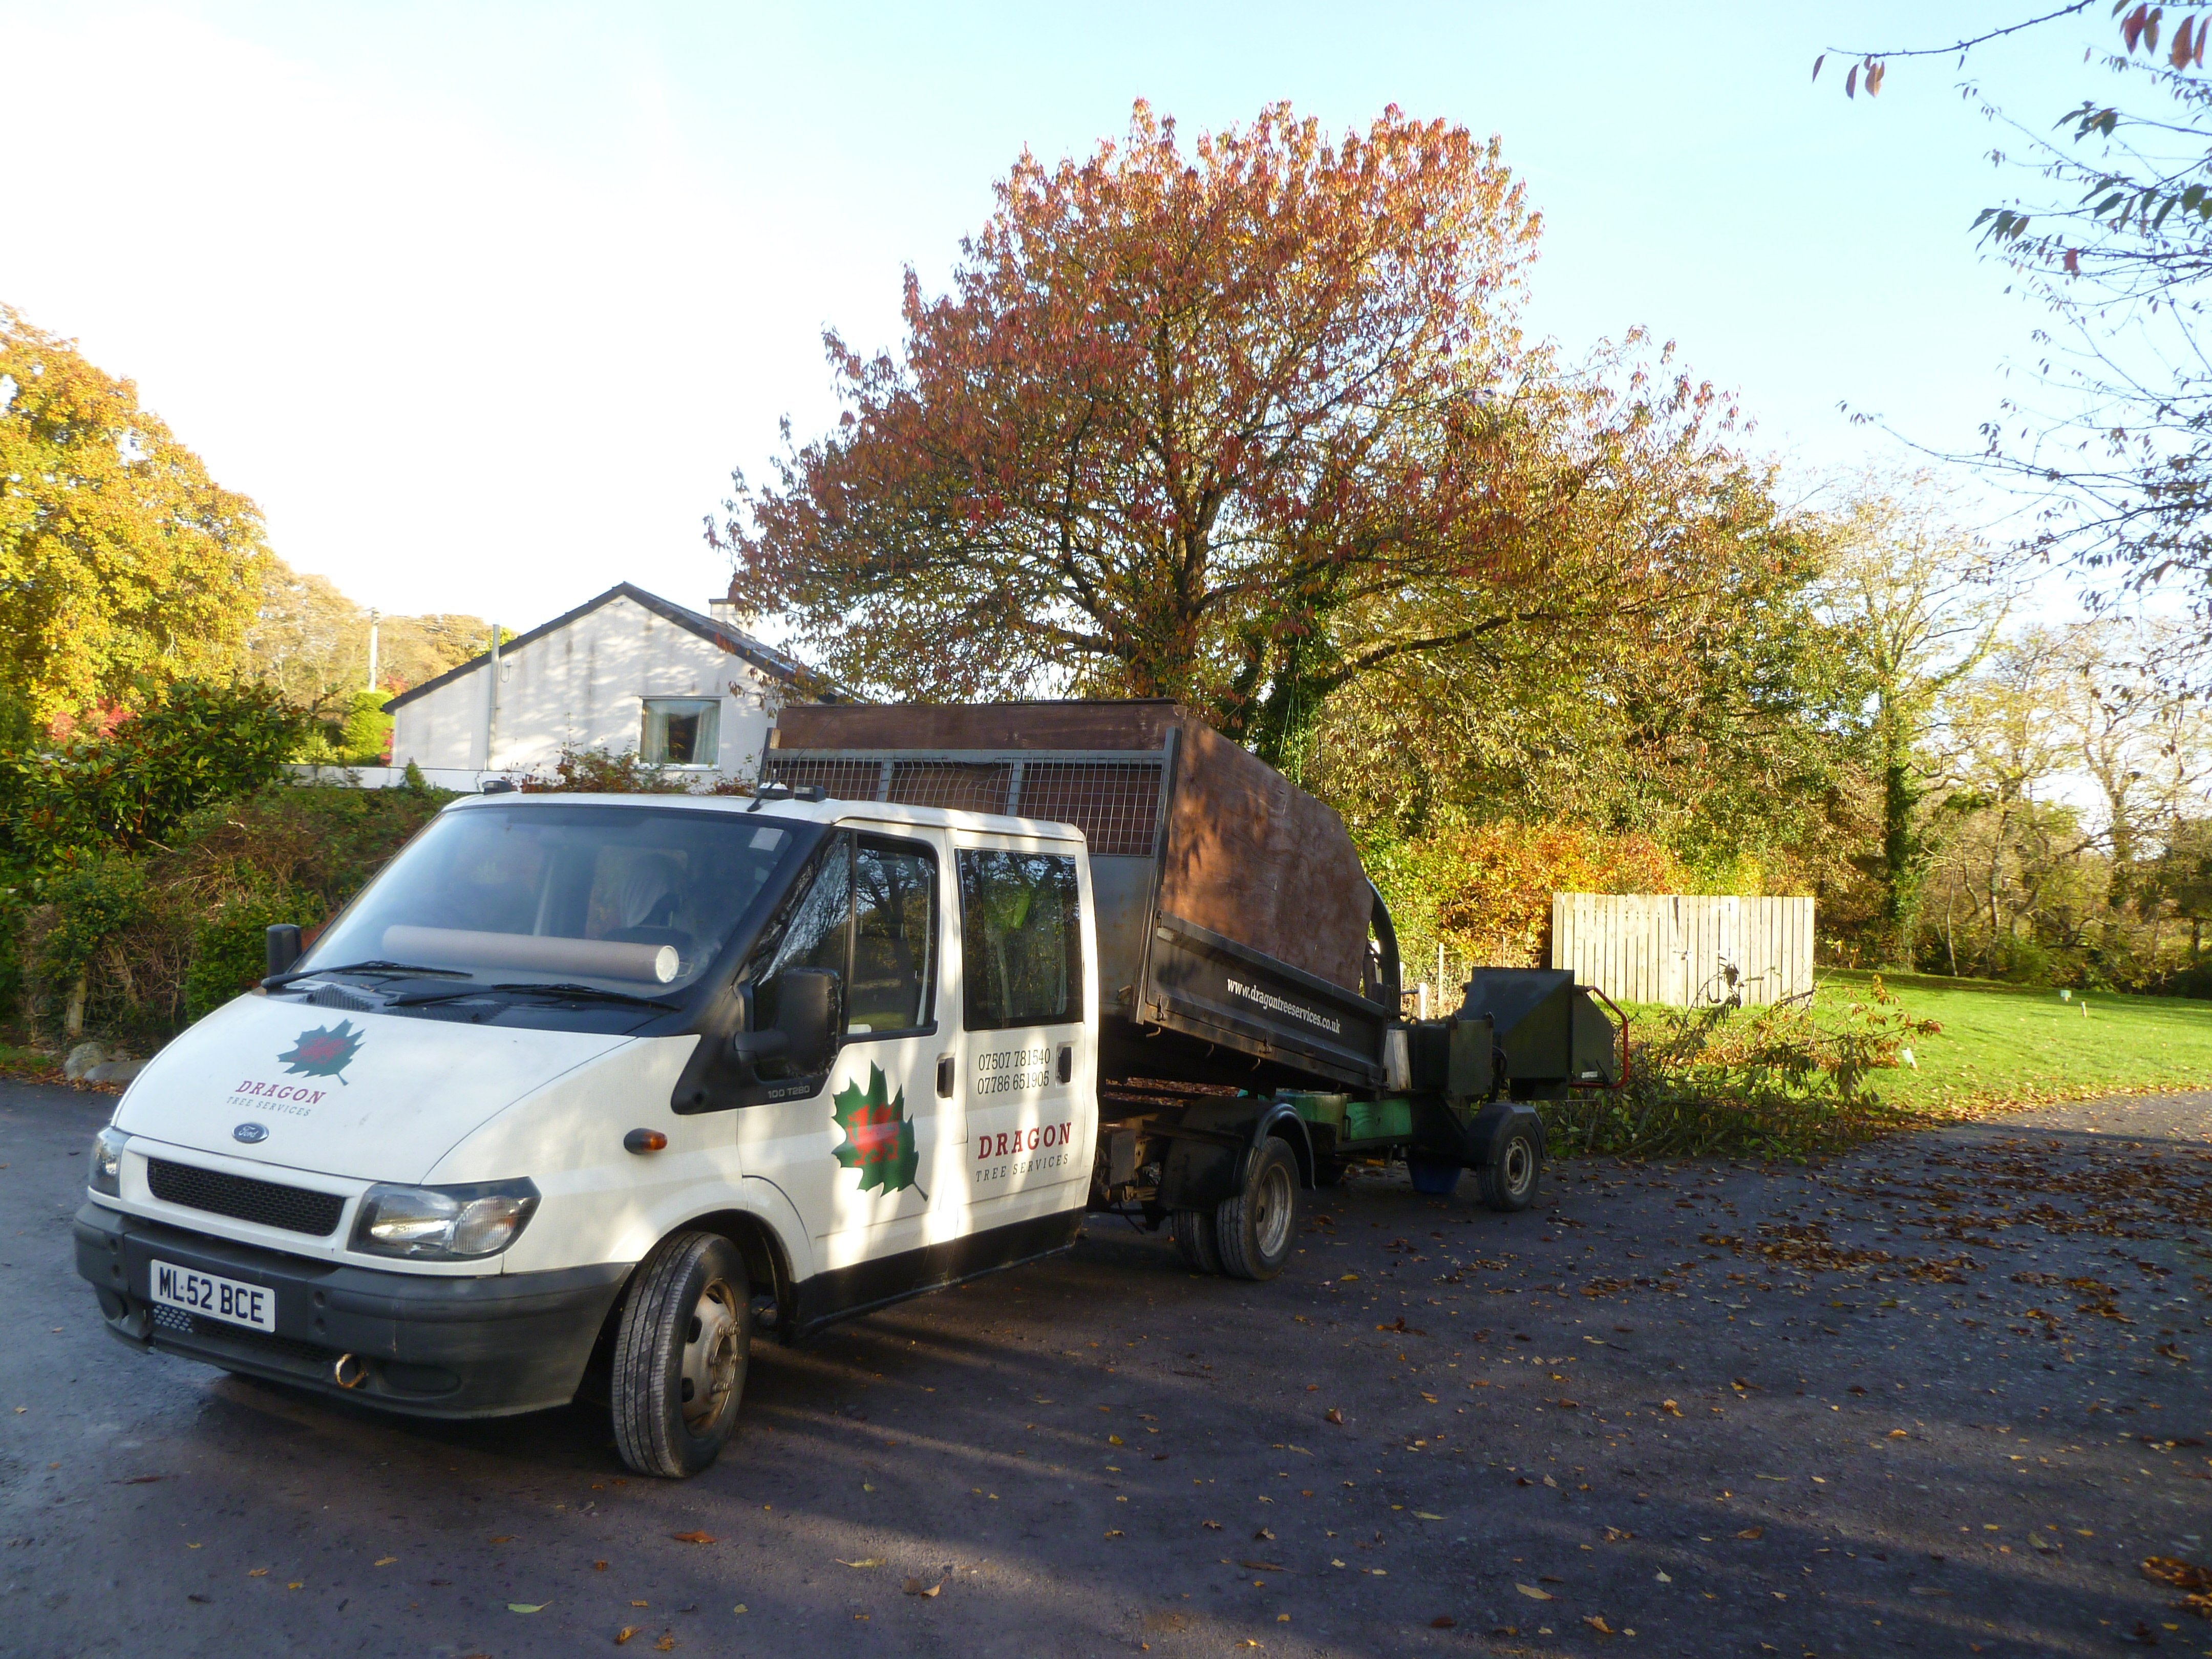 Setting up before beginning the Cherry Tree Crown Reduction. The Dragon Tree Services van now complete with go faster stripes along the sills.